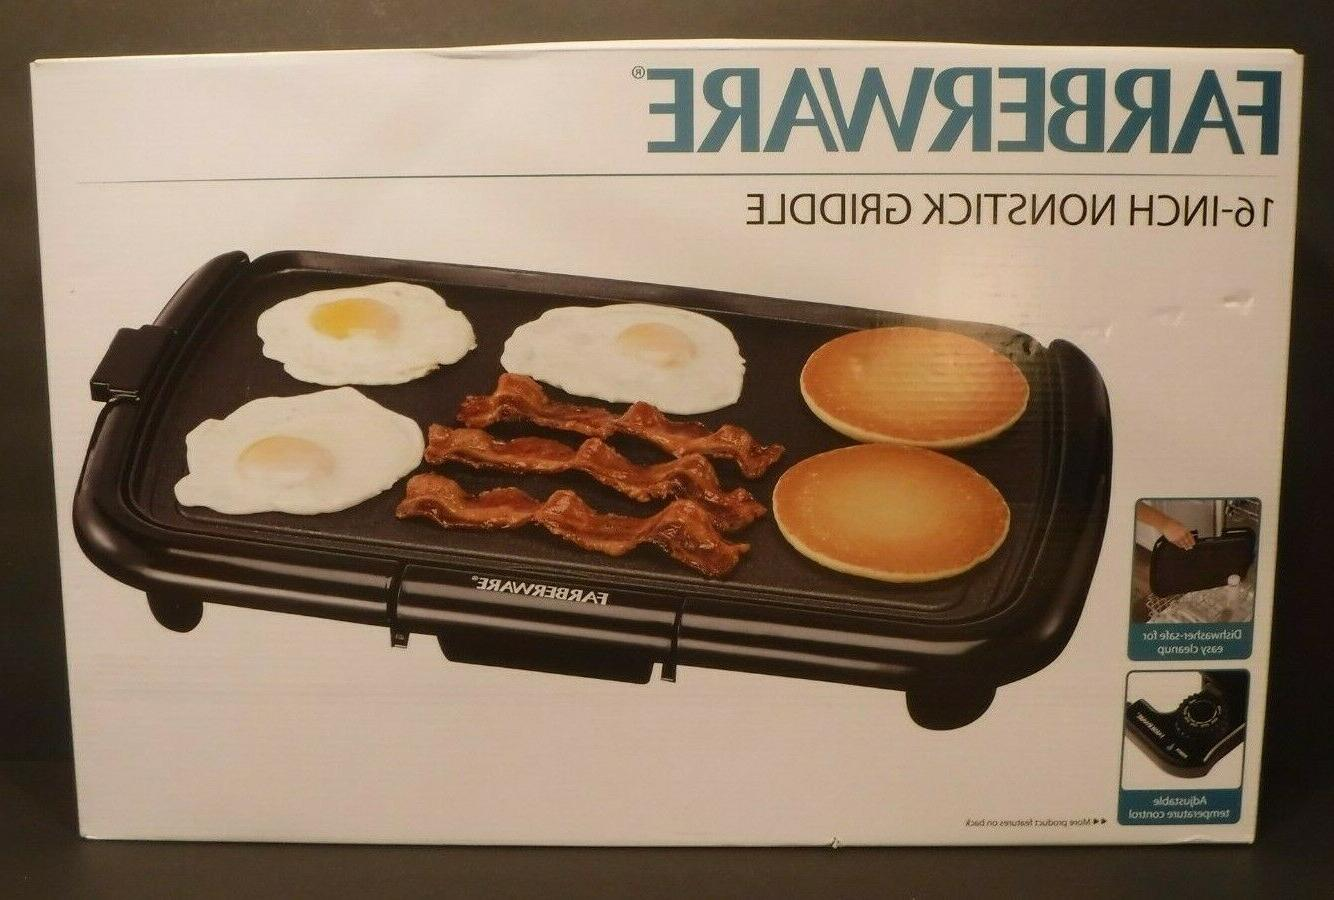 New Farberware Nonstick Griddle #201795